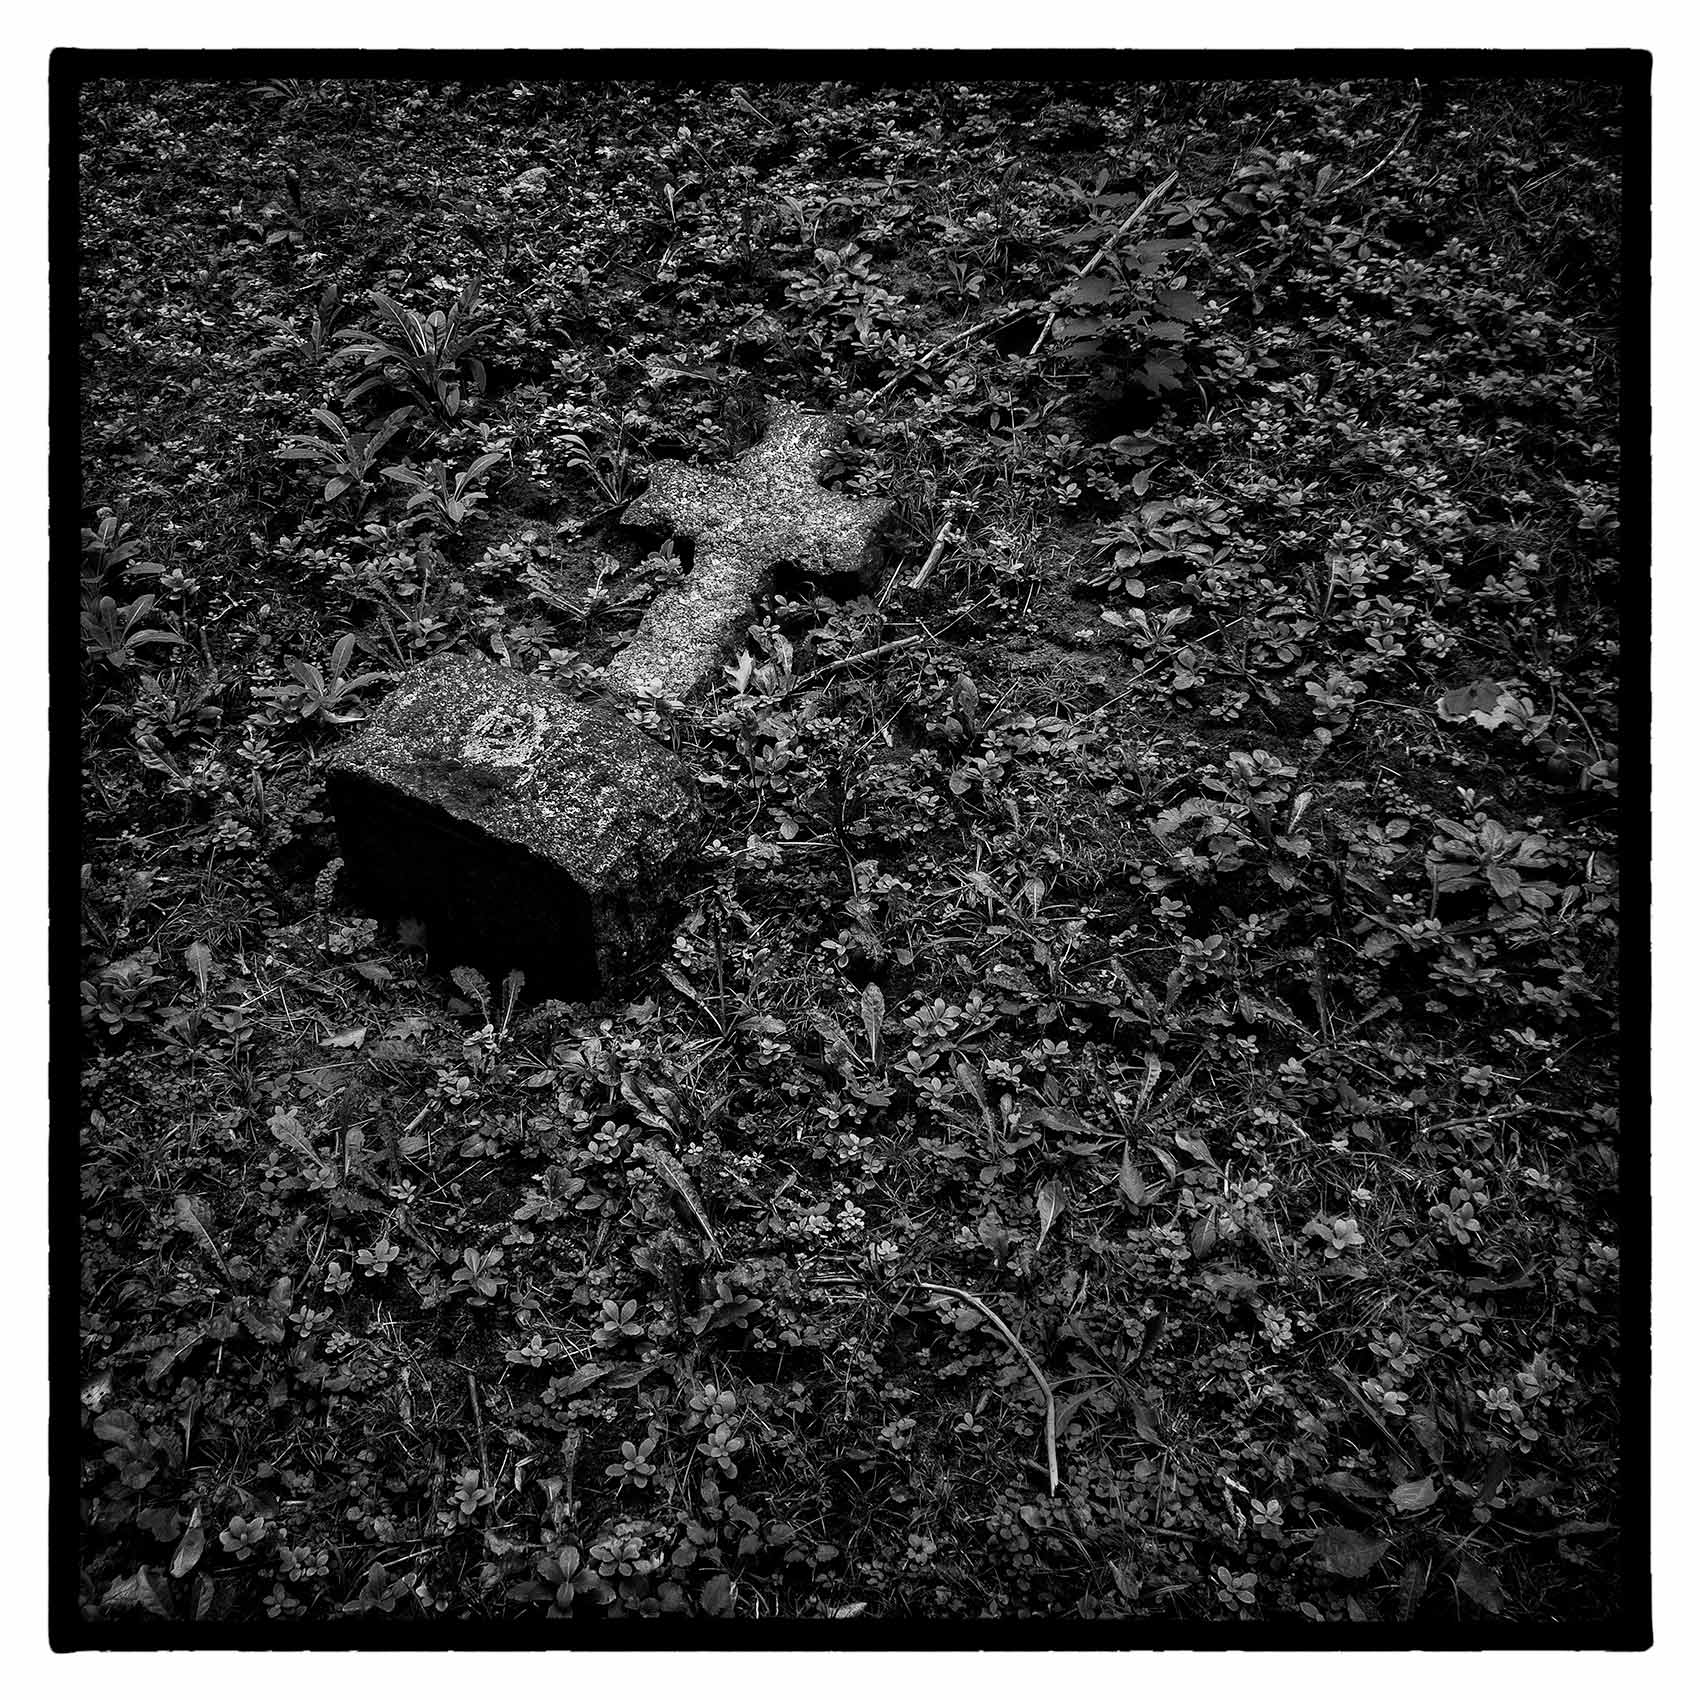 a fallen cross headstone lays in the grass on the ground at st. james cemetary in Toronto